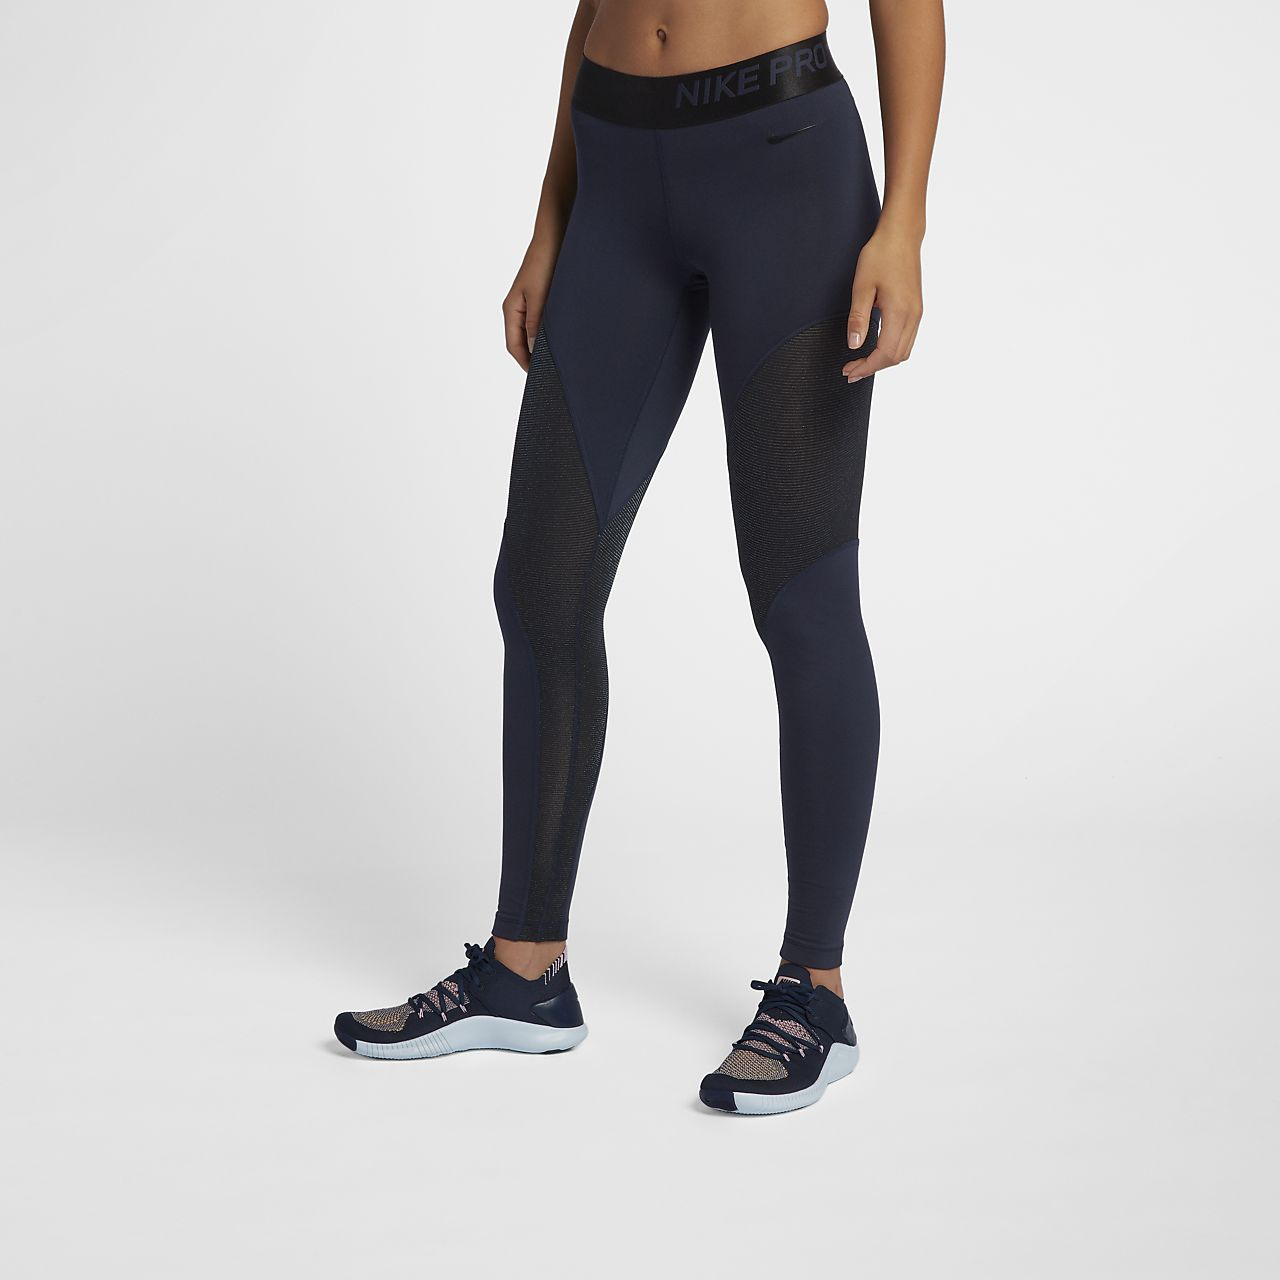 Nike Pro Warm  Women's Sparkle 7/8 Tights